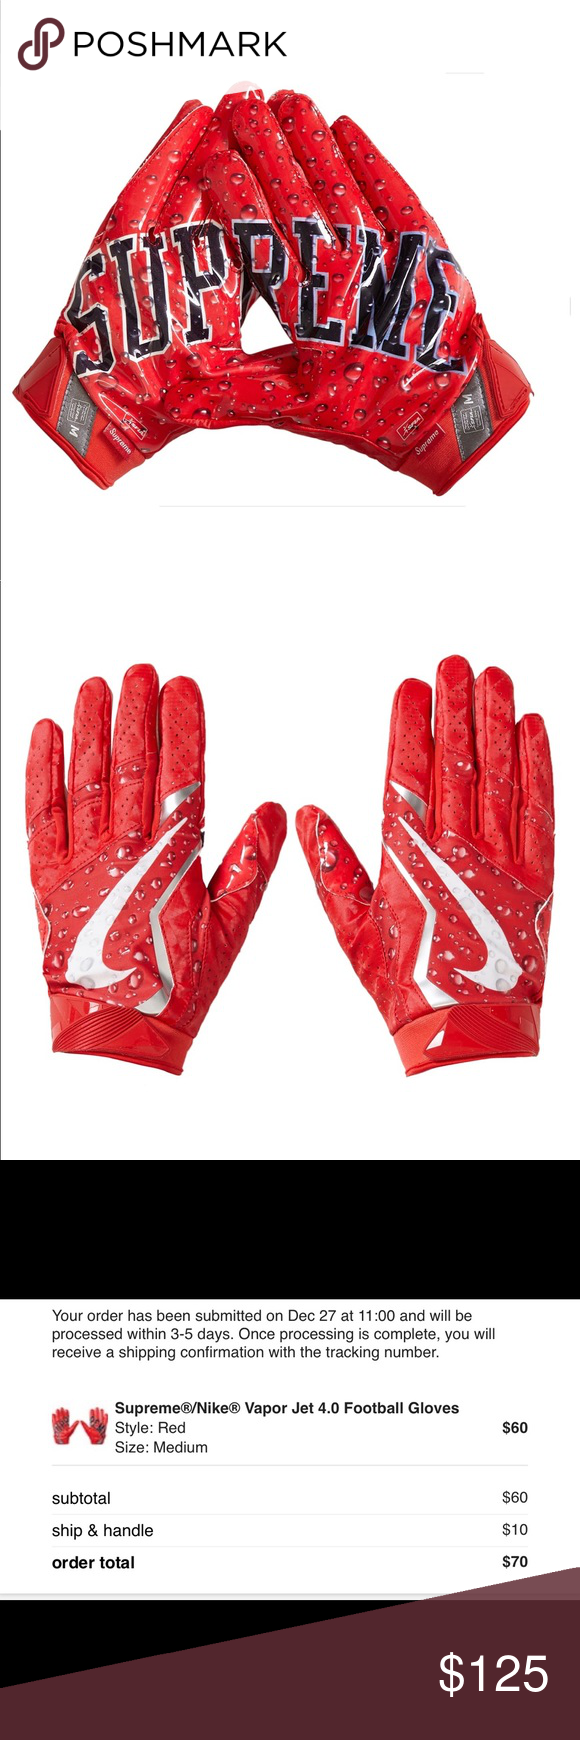 finest selection e22bf 2f571 Supreme Nike Vapor Jet 4.0 Football Gloves Red Supreme Nike Vapor Jet 4.0  Football Gloves. Red. Limited Edition. Sold Out In Minutes.